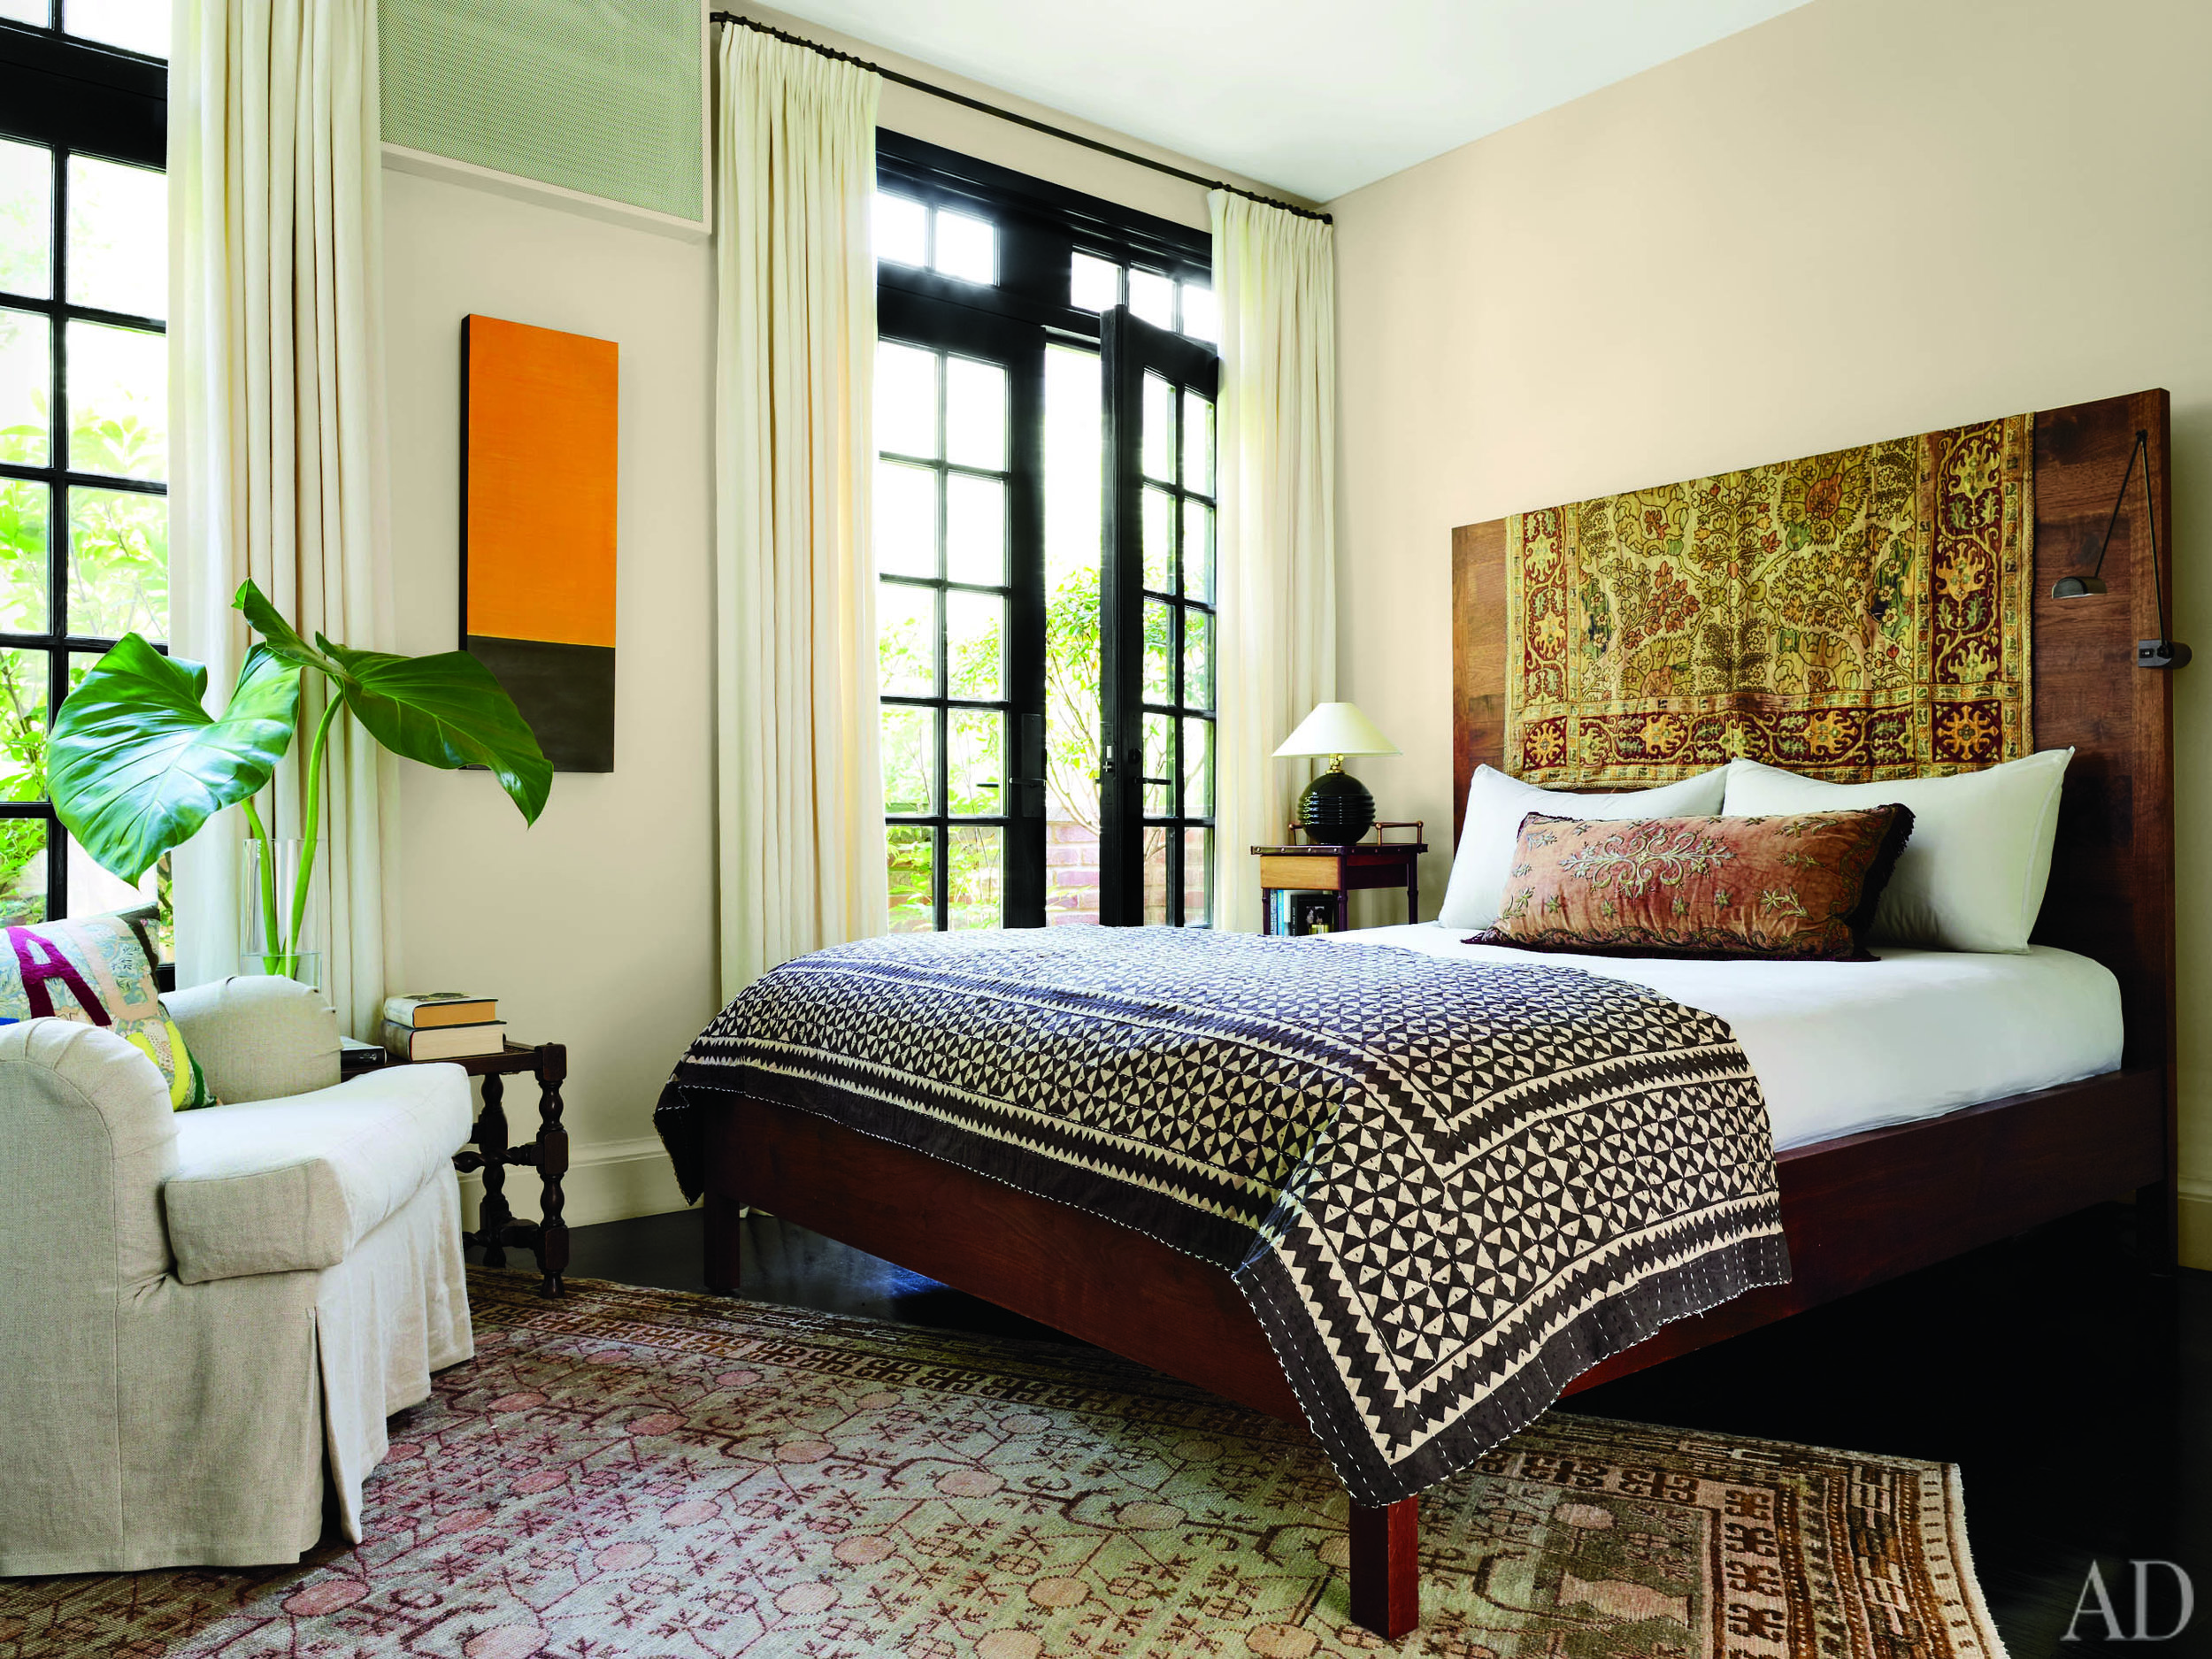 A 19th-century Turkish textile is draped over the headboard of a  BDDW  bed in the master suite.